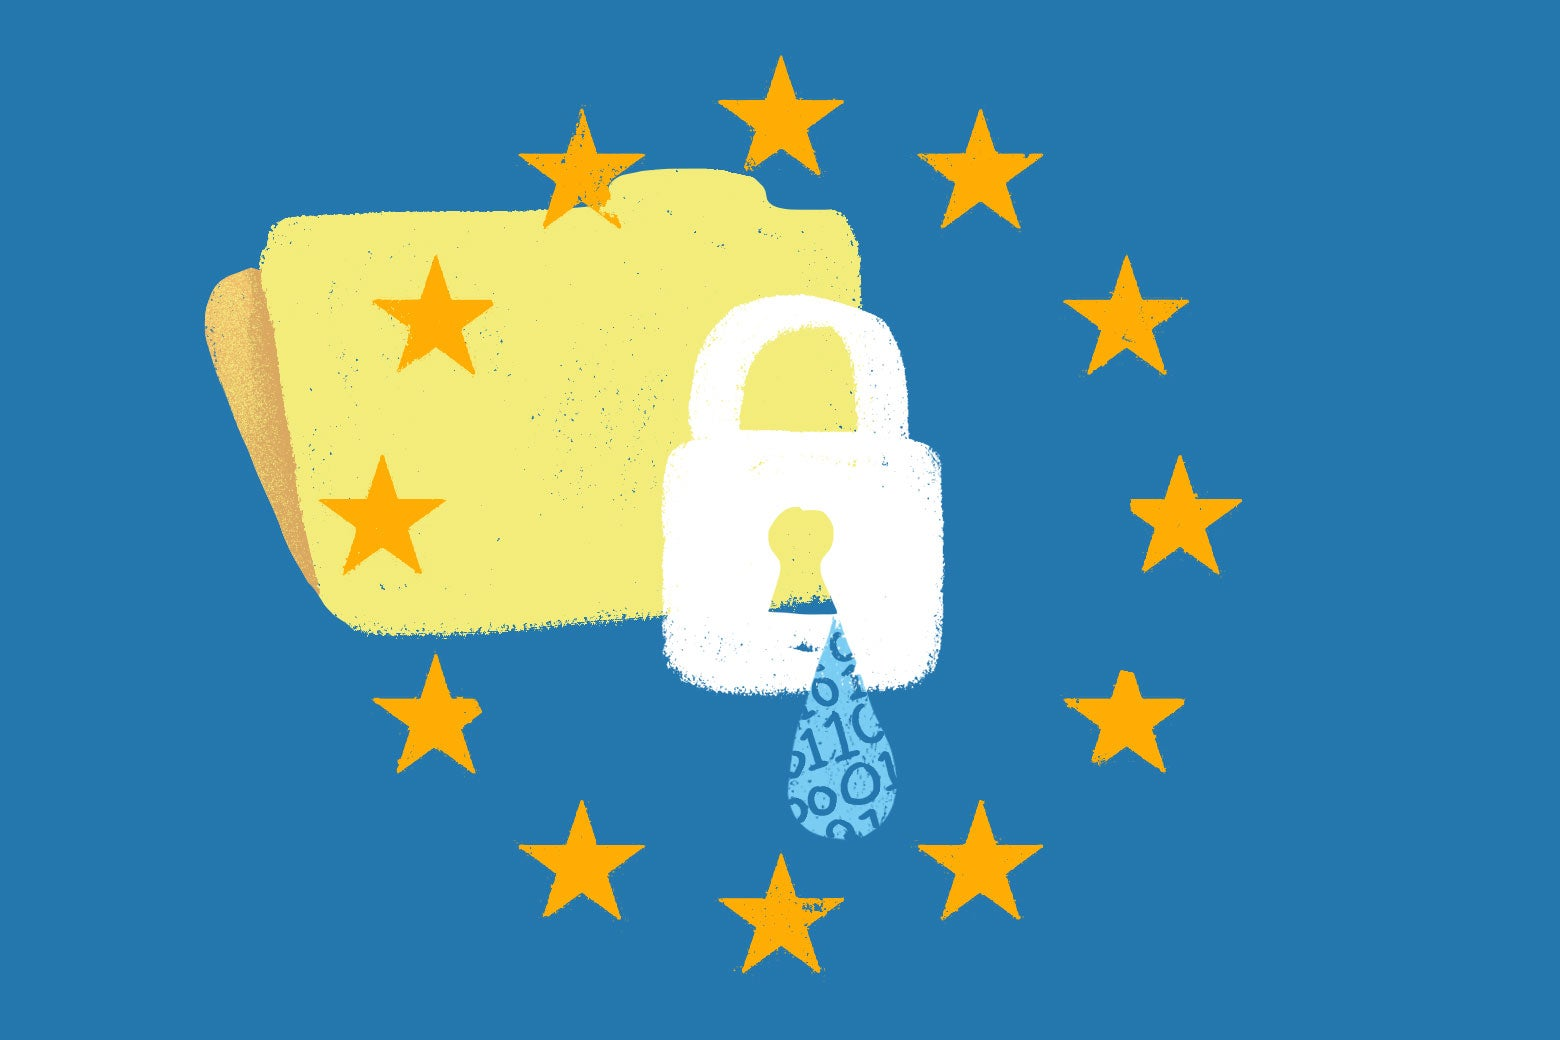 GDPR flag with file behind it leaking data in 0s and 1s.